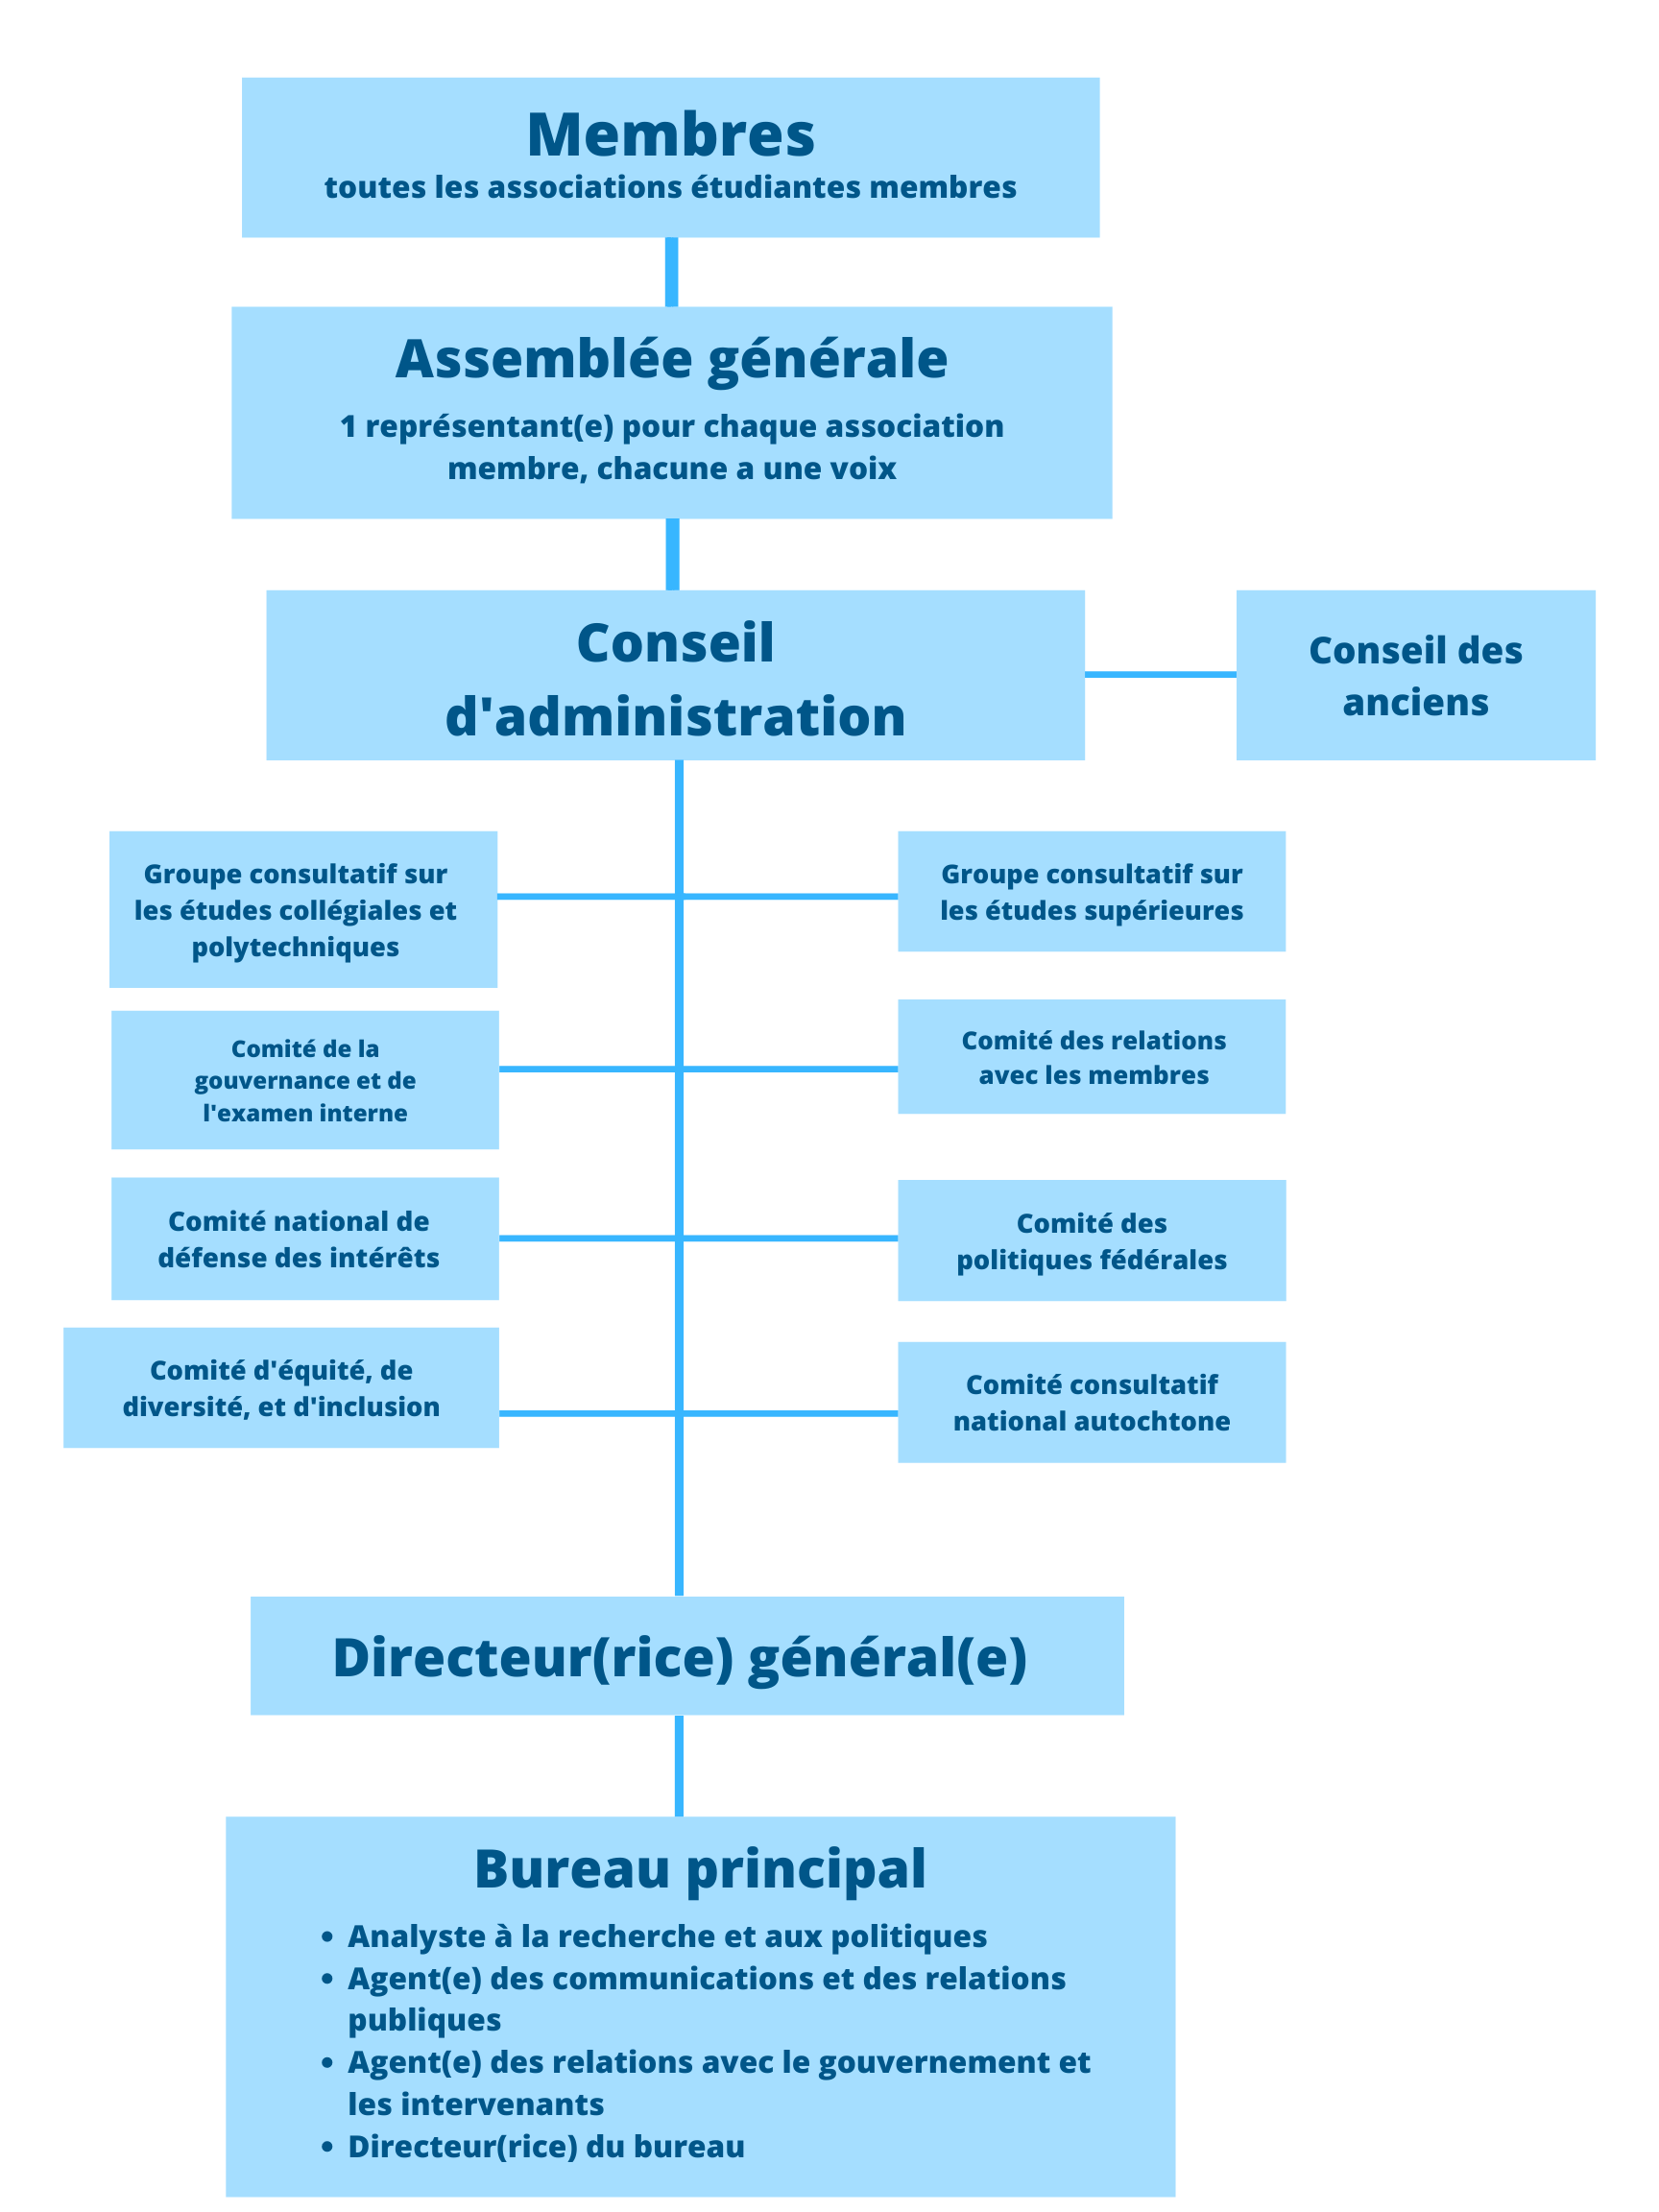 Org_Structure_2019_FR.png